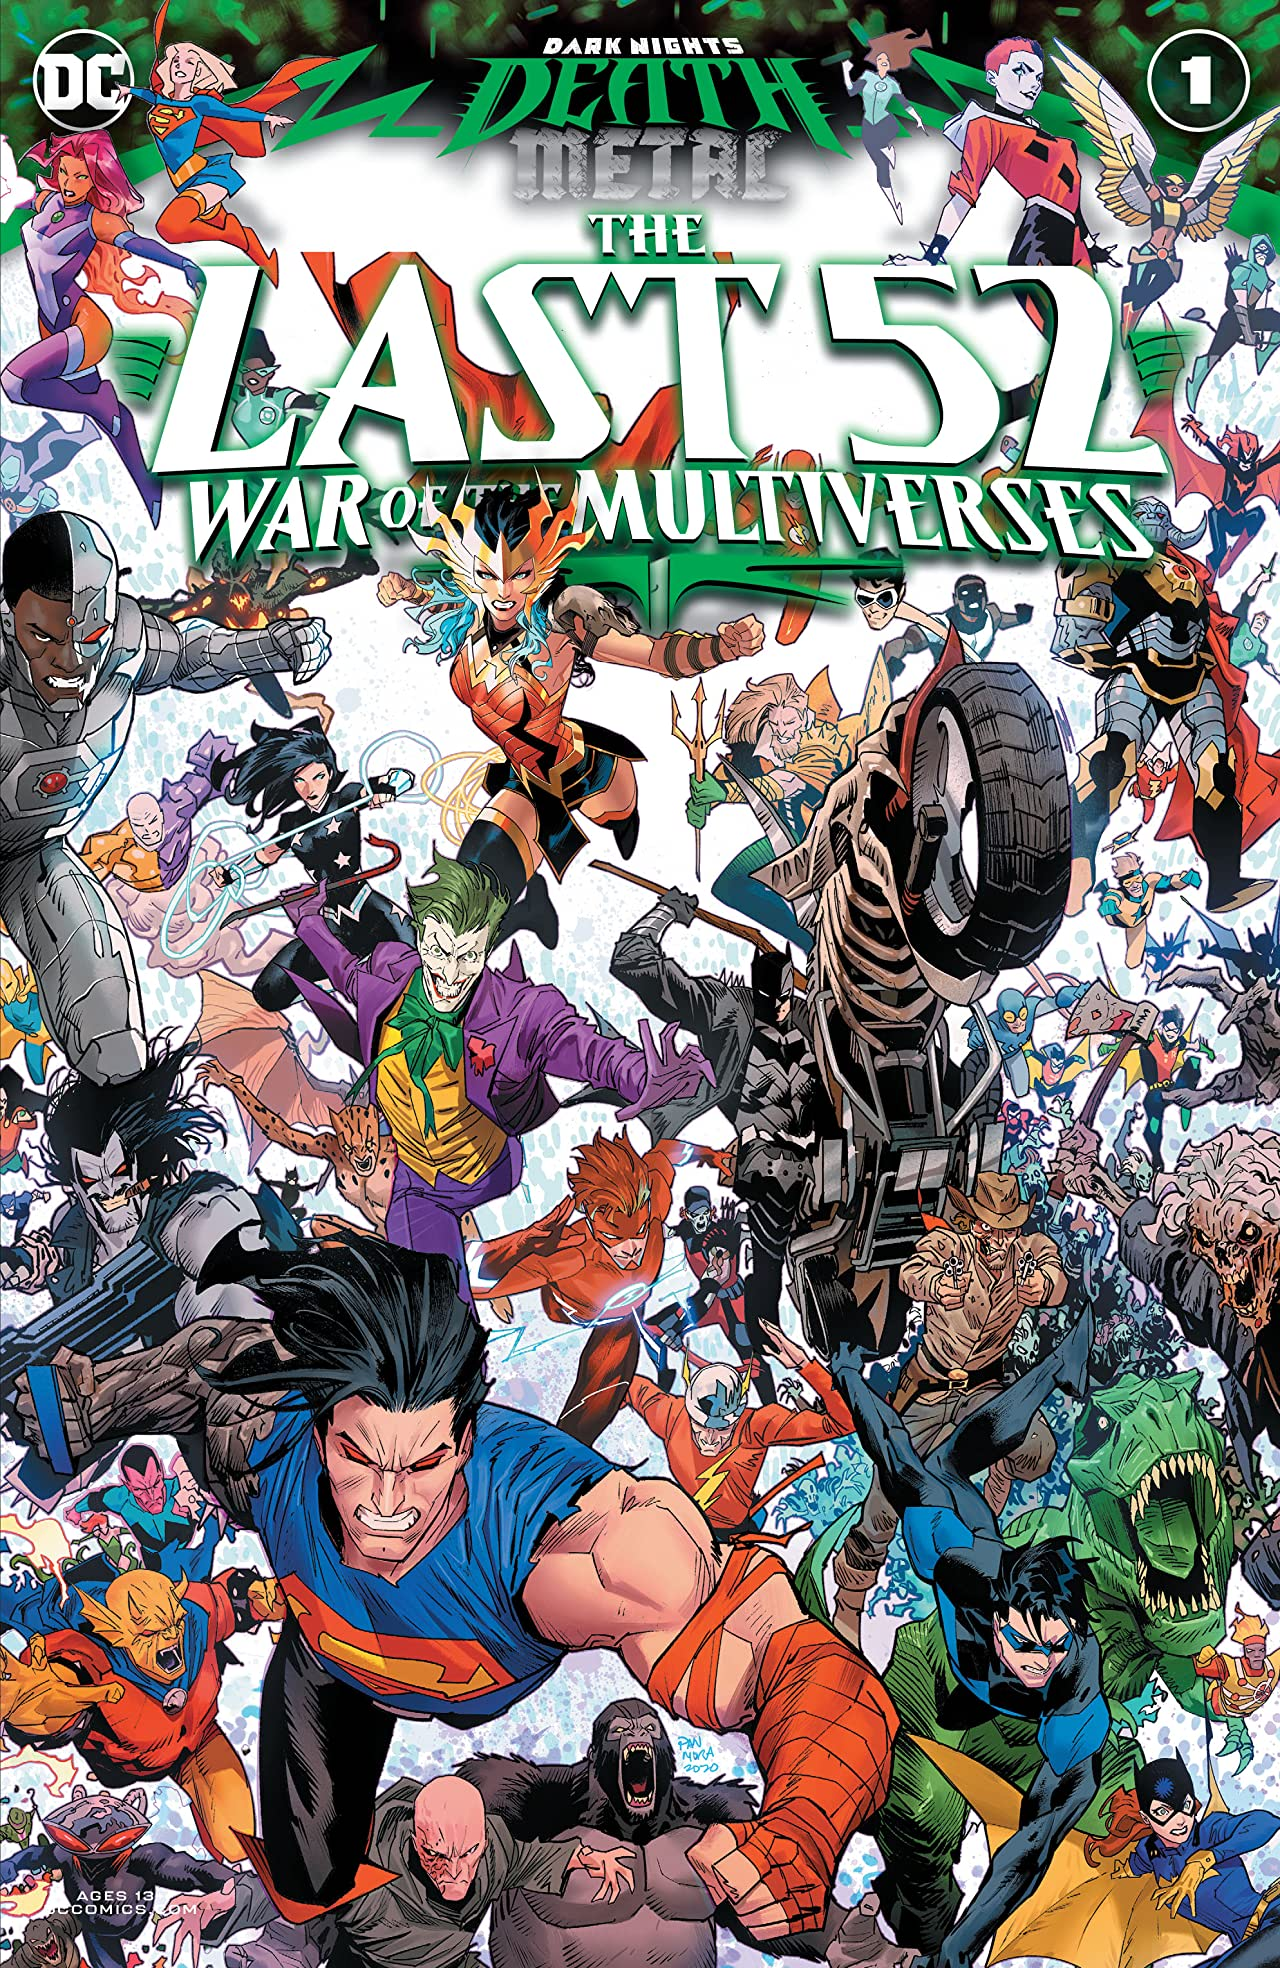 Dark Nights: Death Metal The Last 52: War of the Multiverses (2020-) No.1